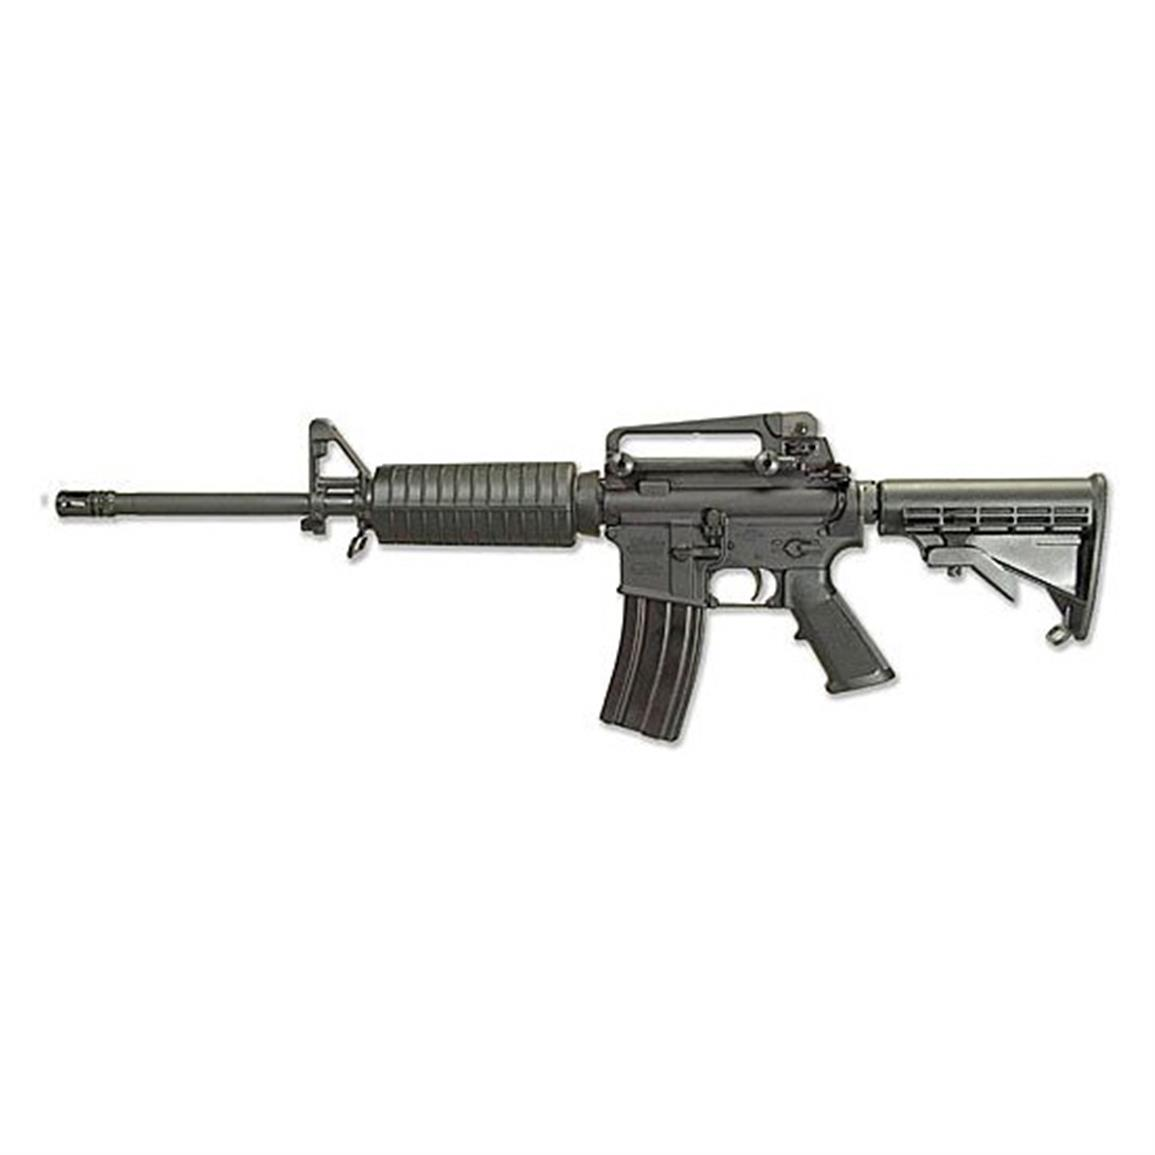 Windham Weaponry MPC-LH AR-15, Semi-automatic, 5.56x45mm, R16M4LHT, 848037005564